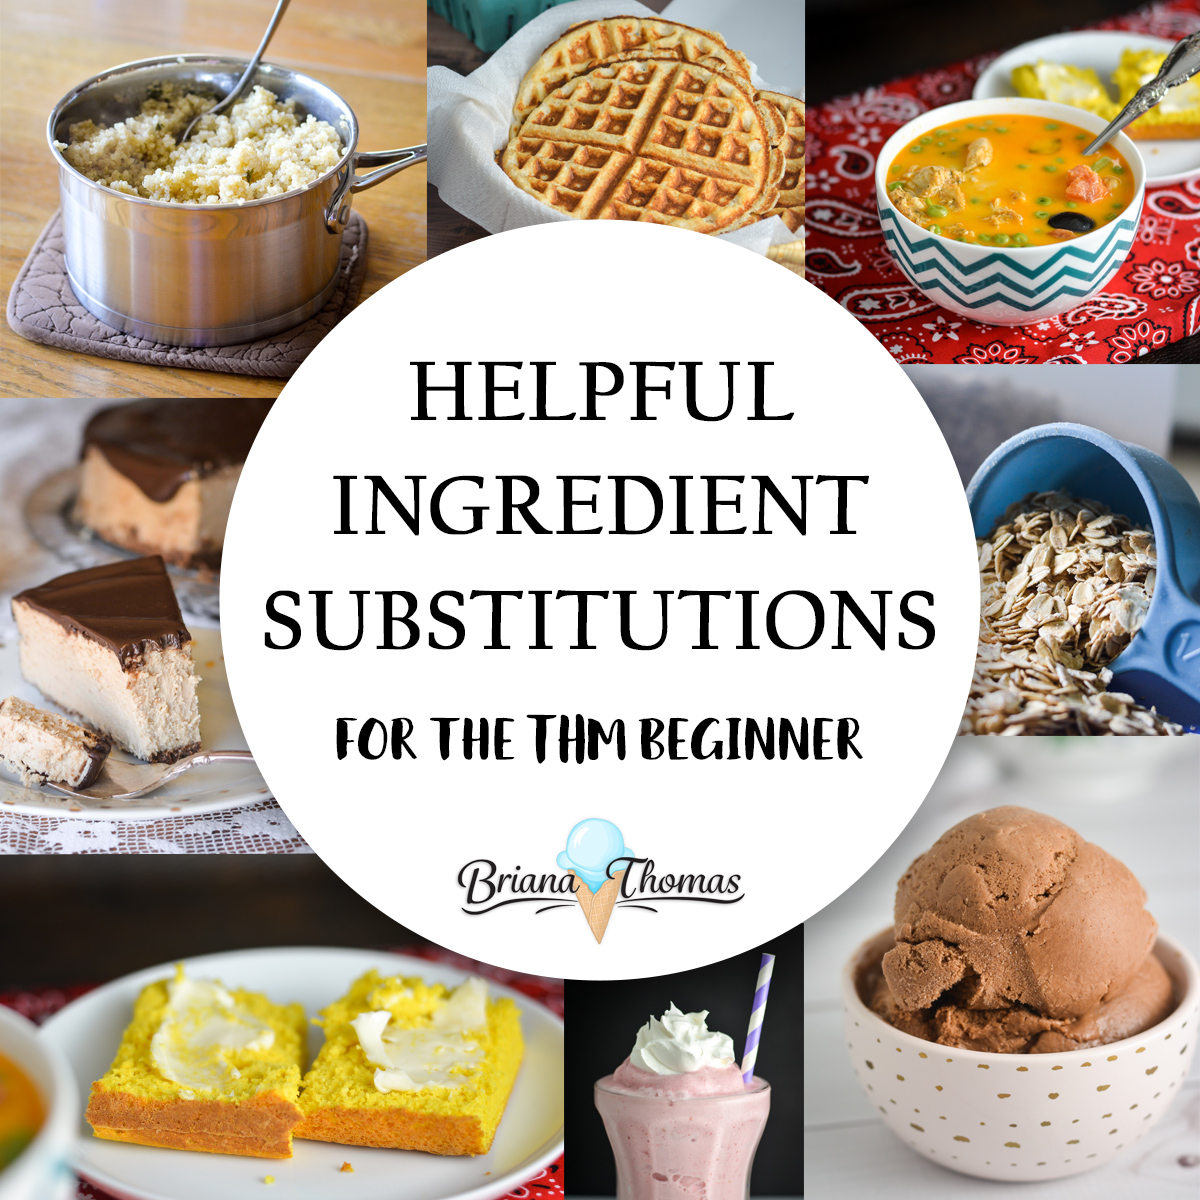 This post is one you'll want to bookmark to refer to over and over again. It covers helpful ingredient substitutions and is geared toward the THM beginner.